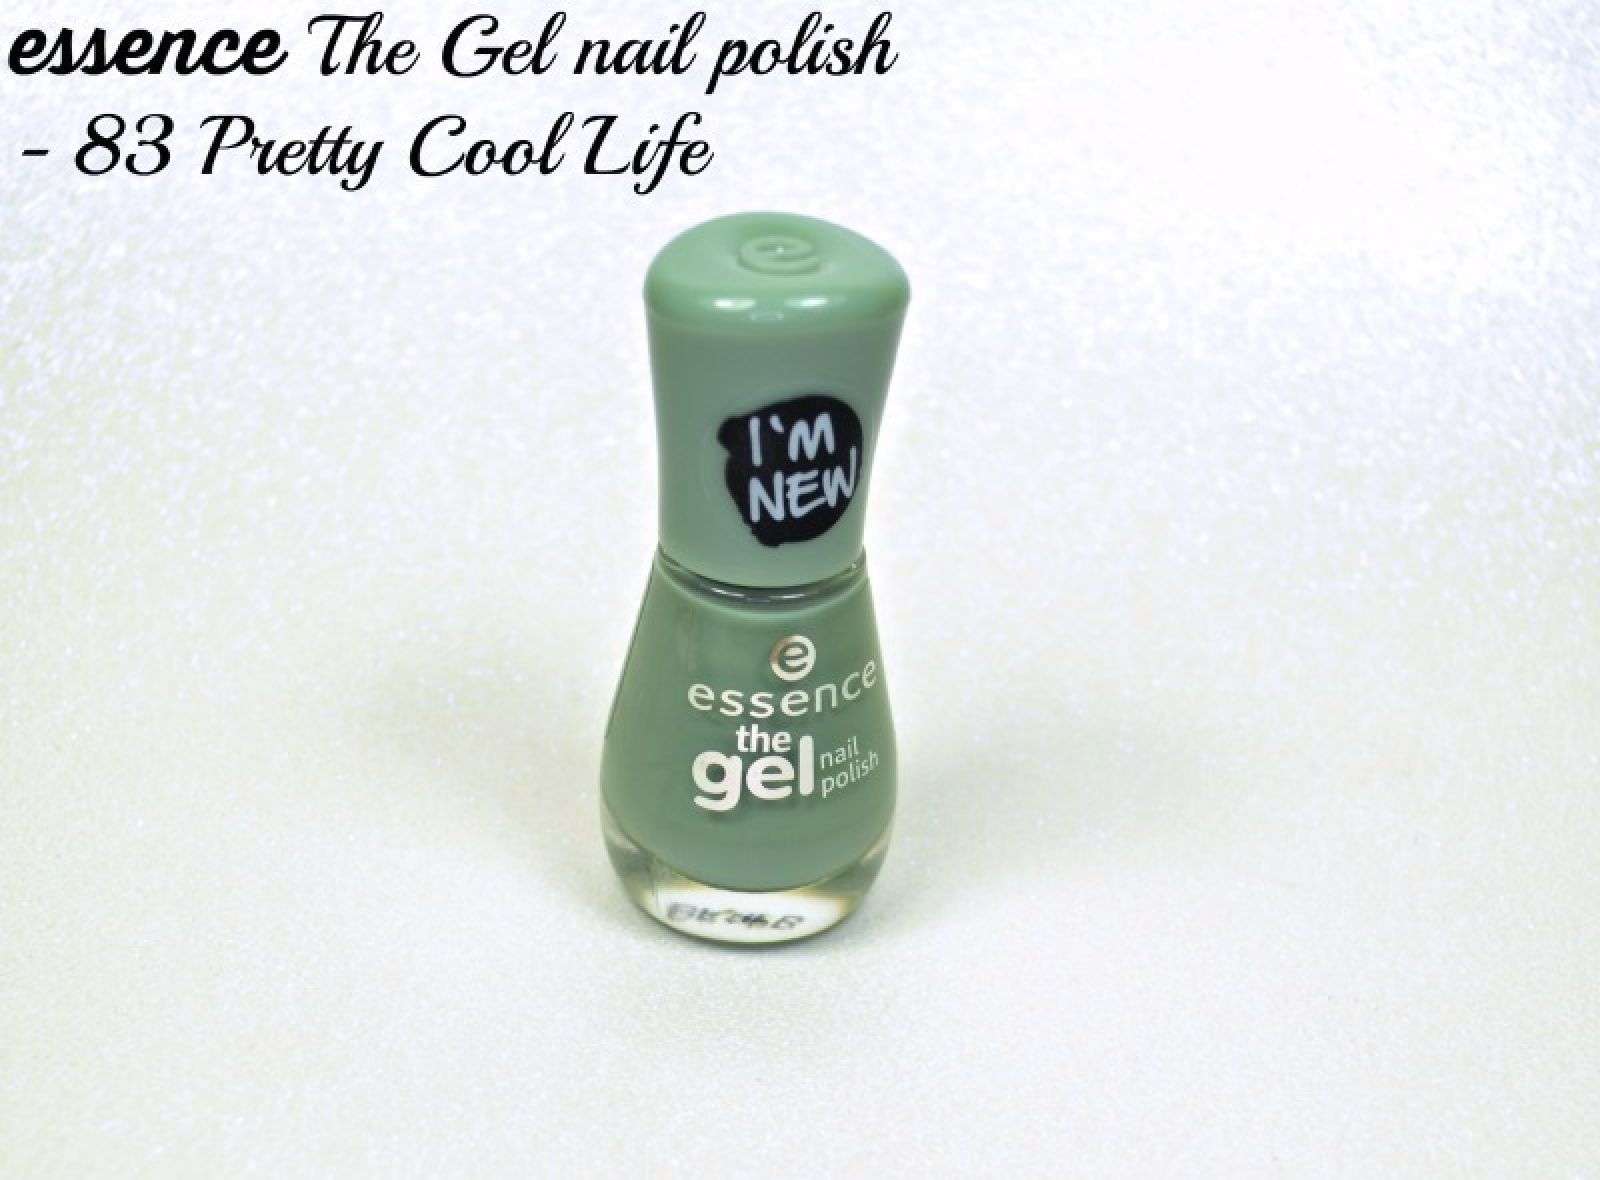 Essence The Gel nail polish 83 Pretty Cool Life swatches and review